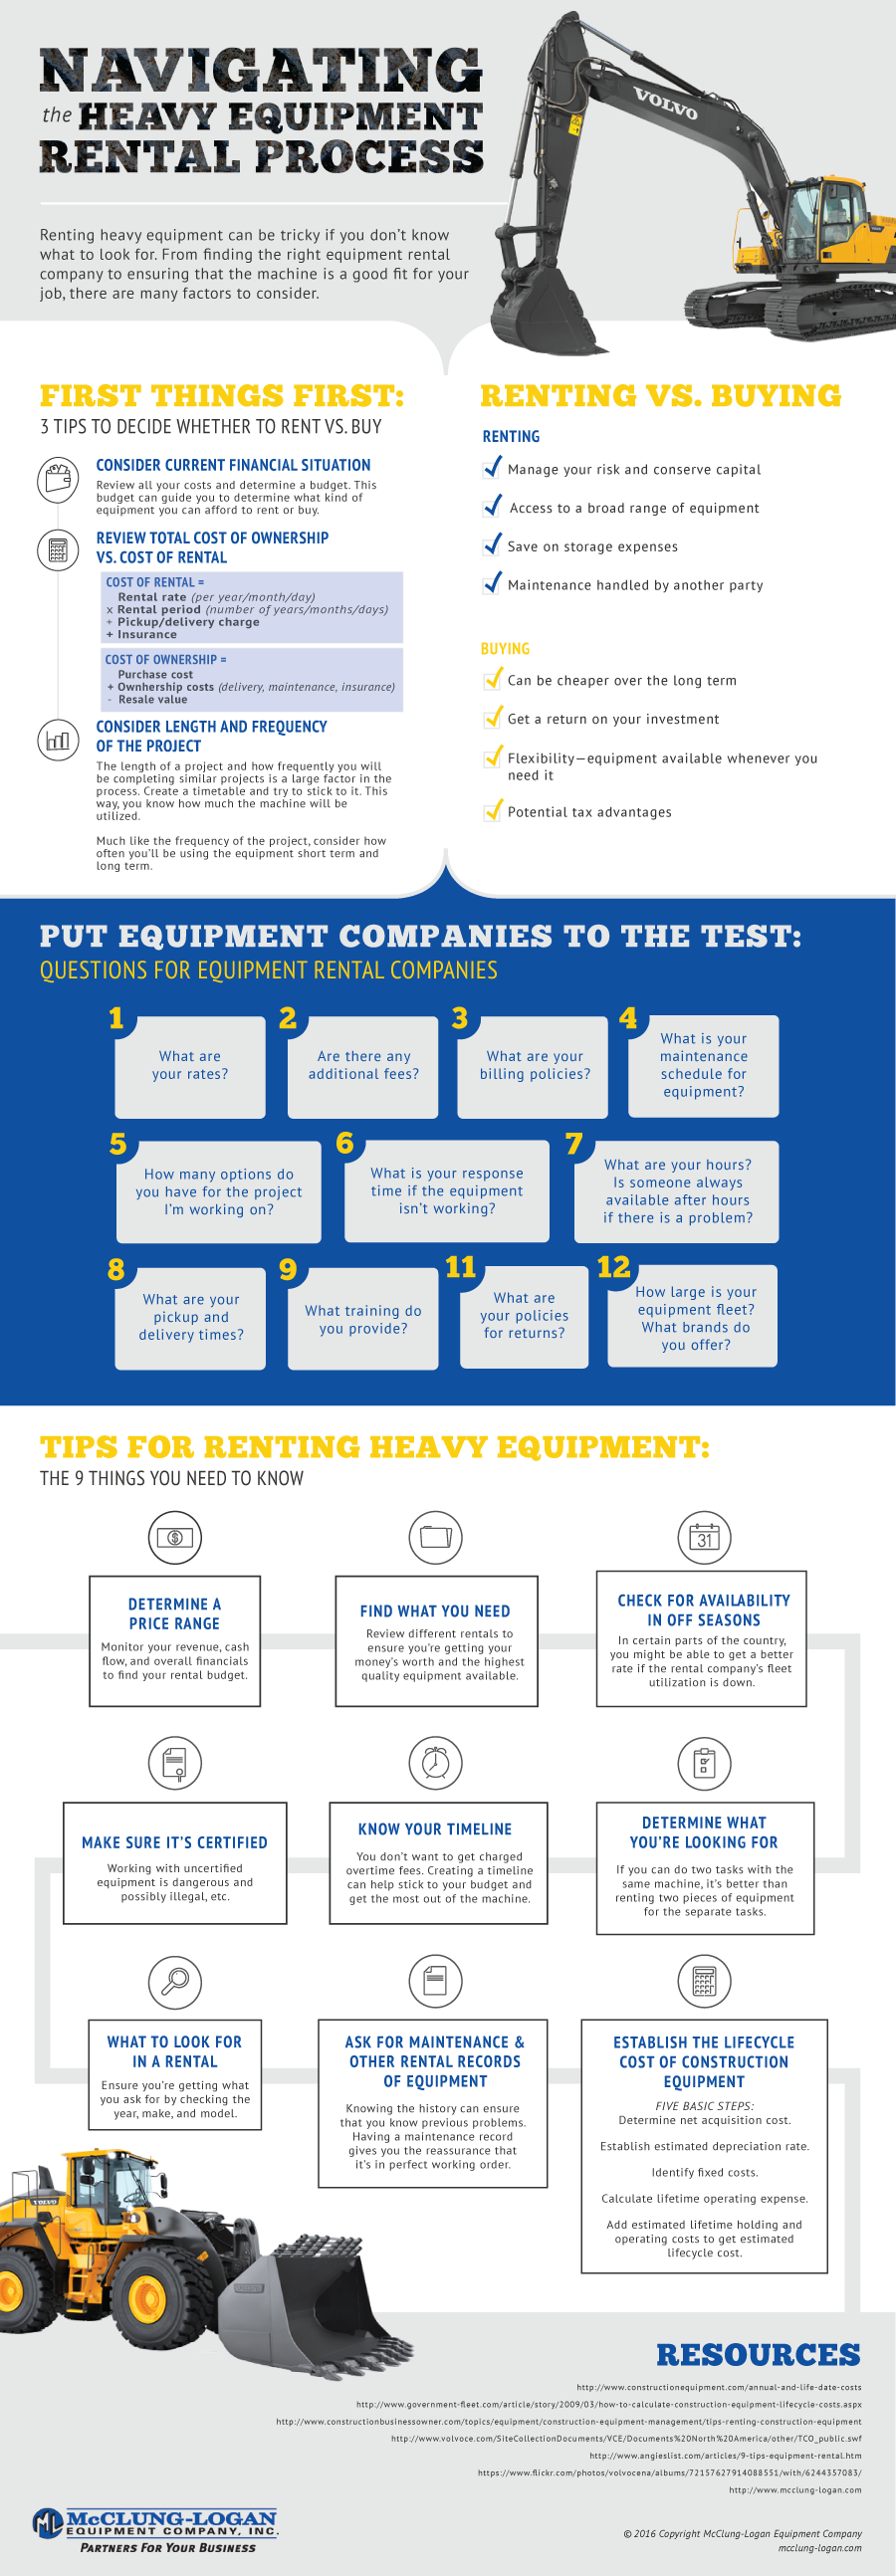 McClung Logan's Tips for Renting Heavy Equipment Infographic